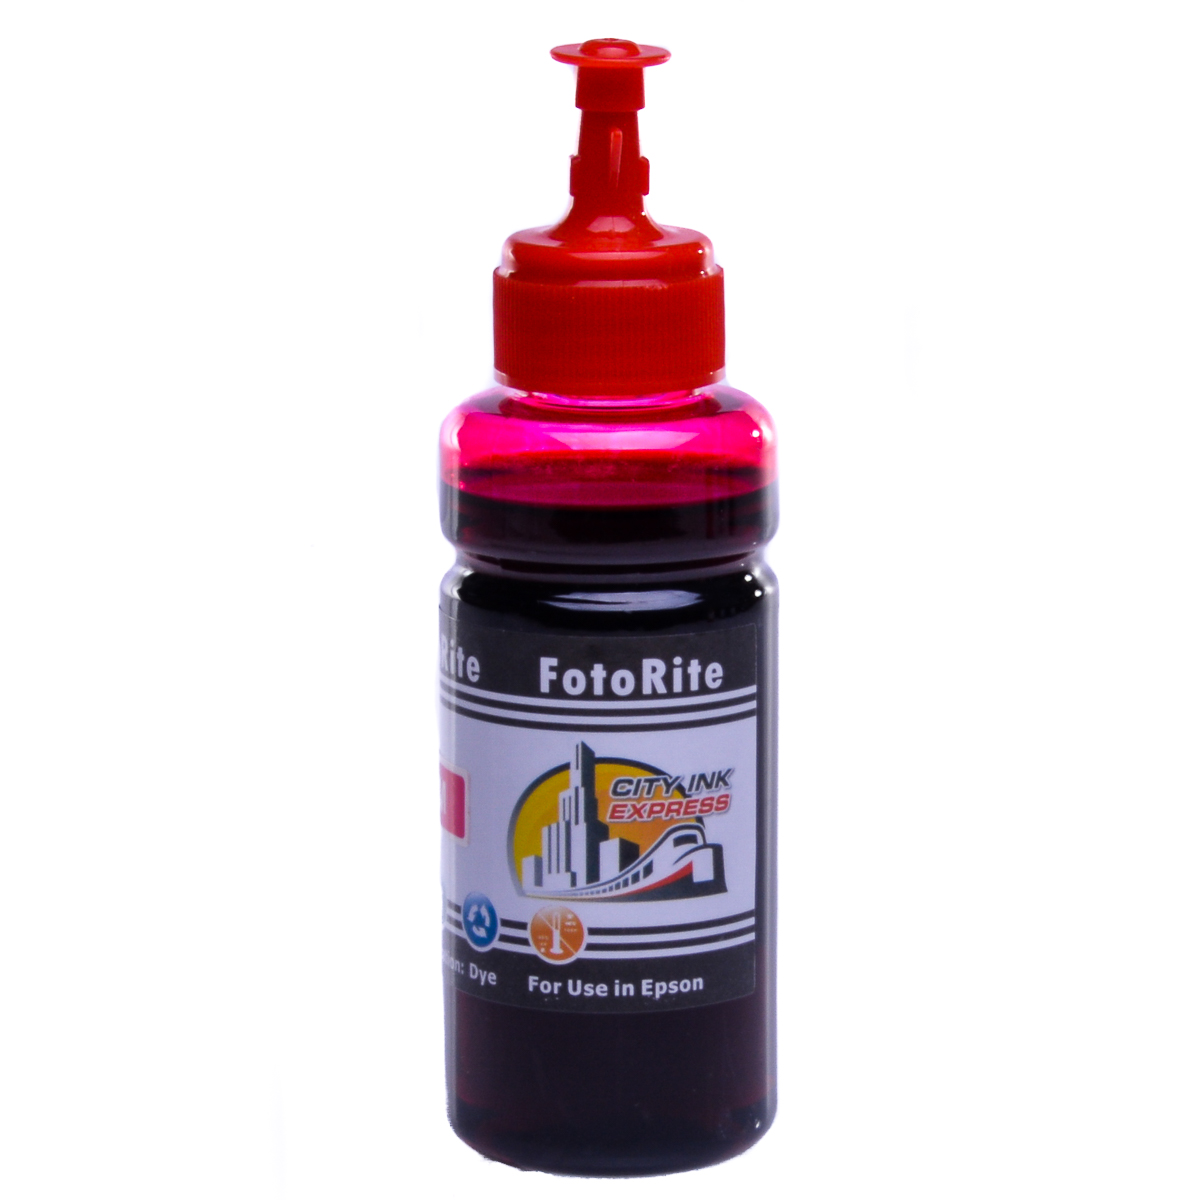 Cheap Magenta dye ink refill replaces Epson XP-605 - T2613